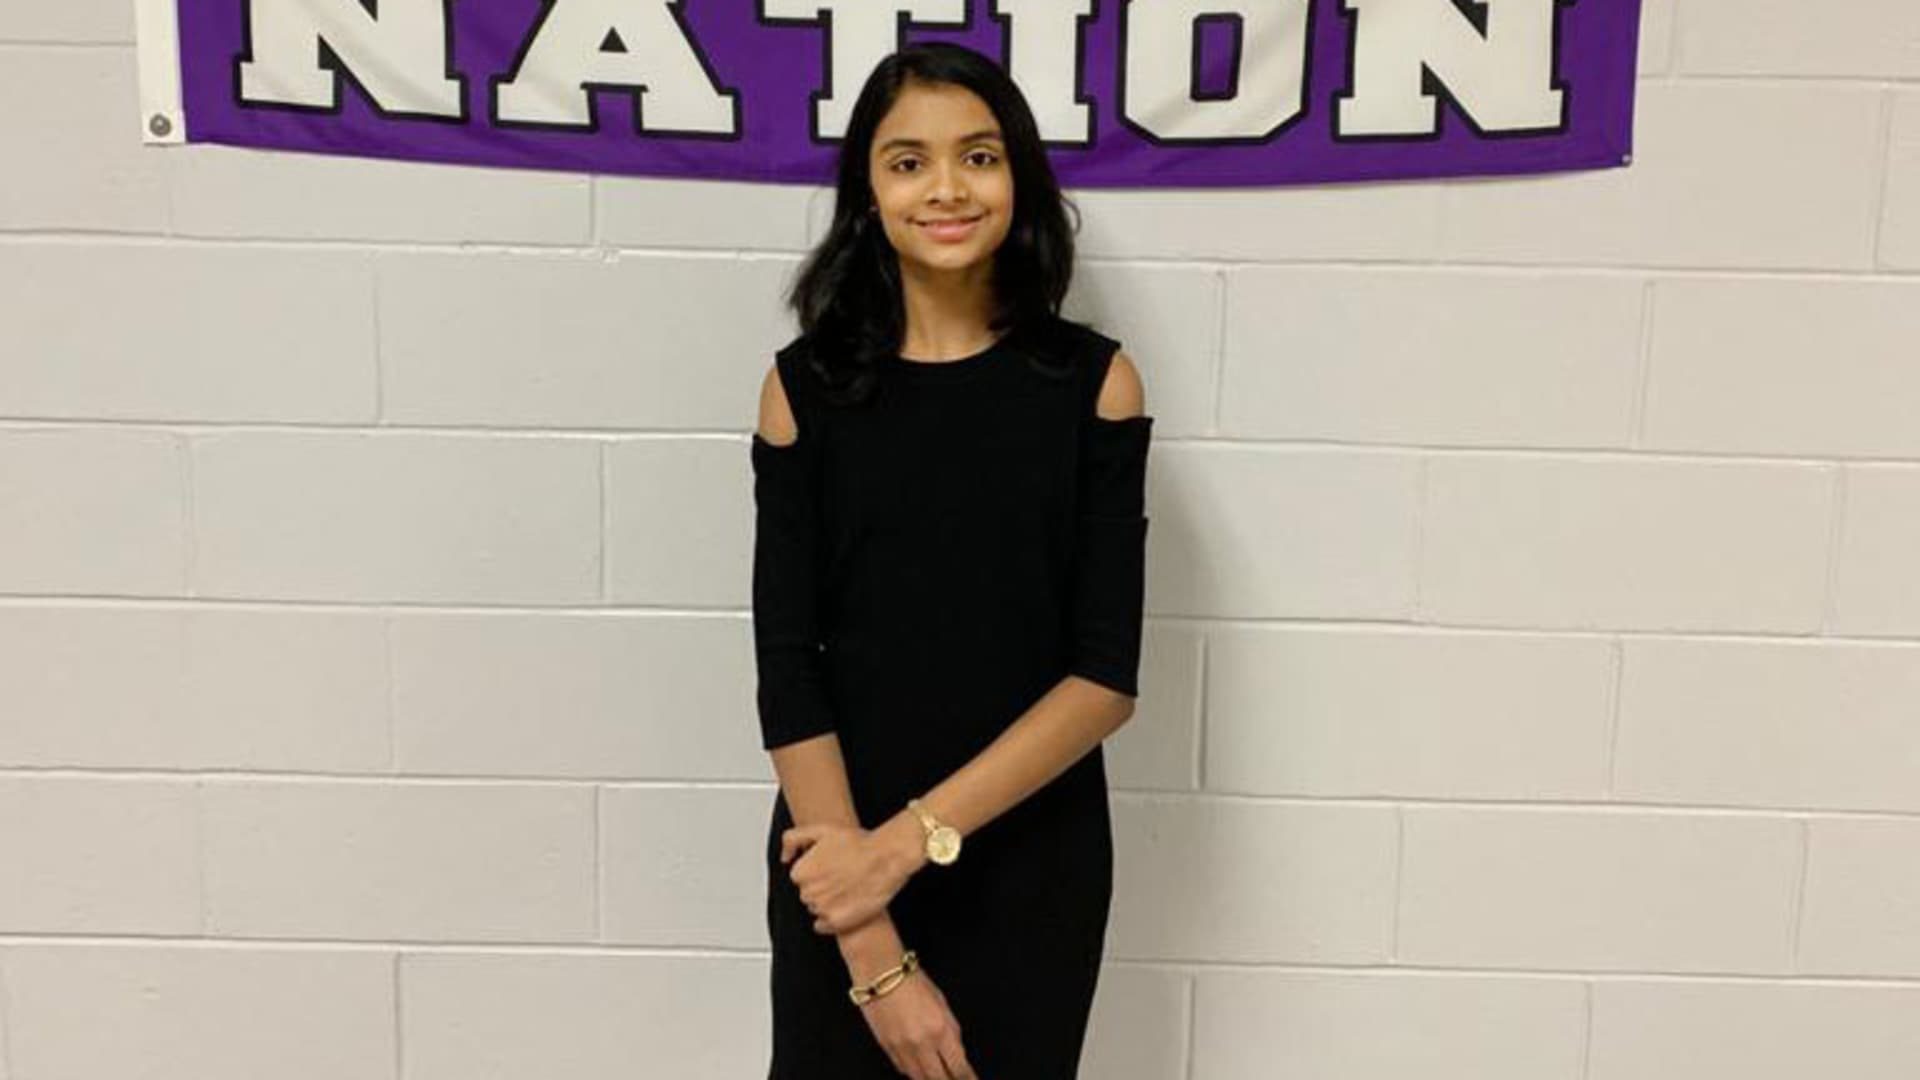 Kavya Venkatesan, 14 years old, has already taken an online personal finance course and is learning about investing.